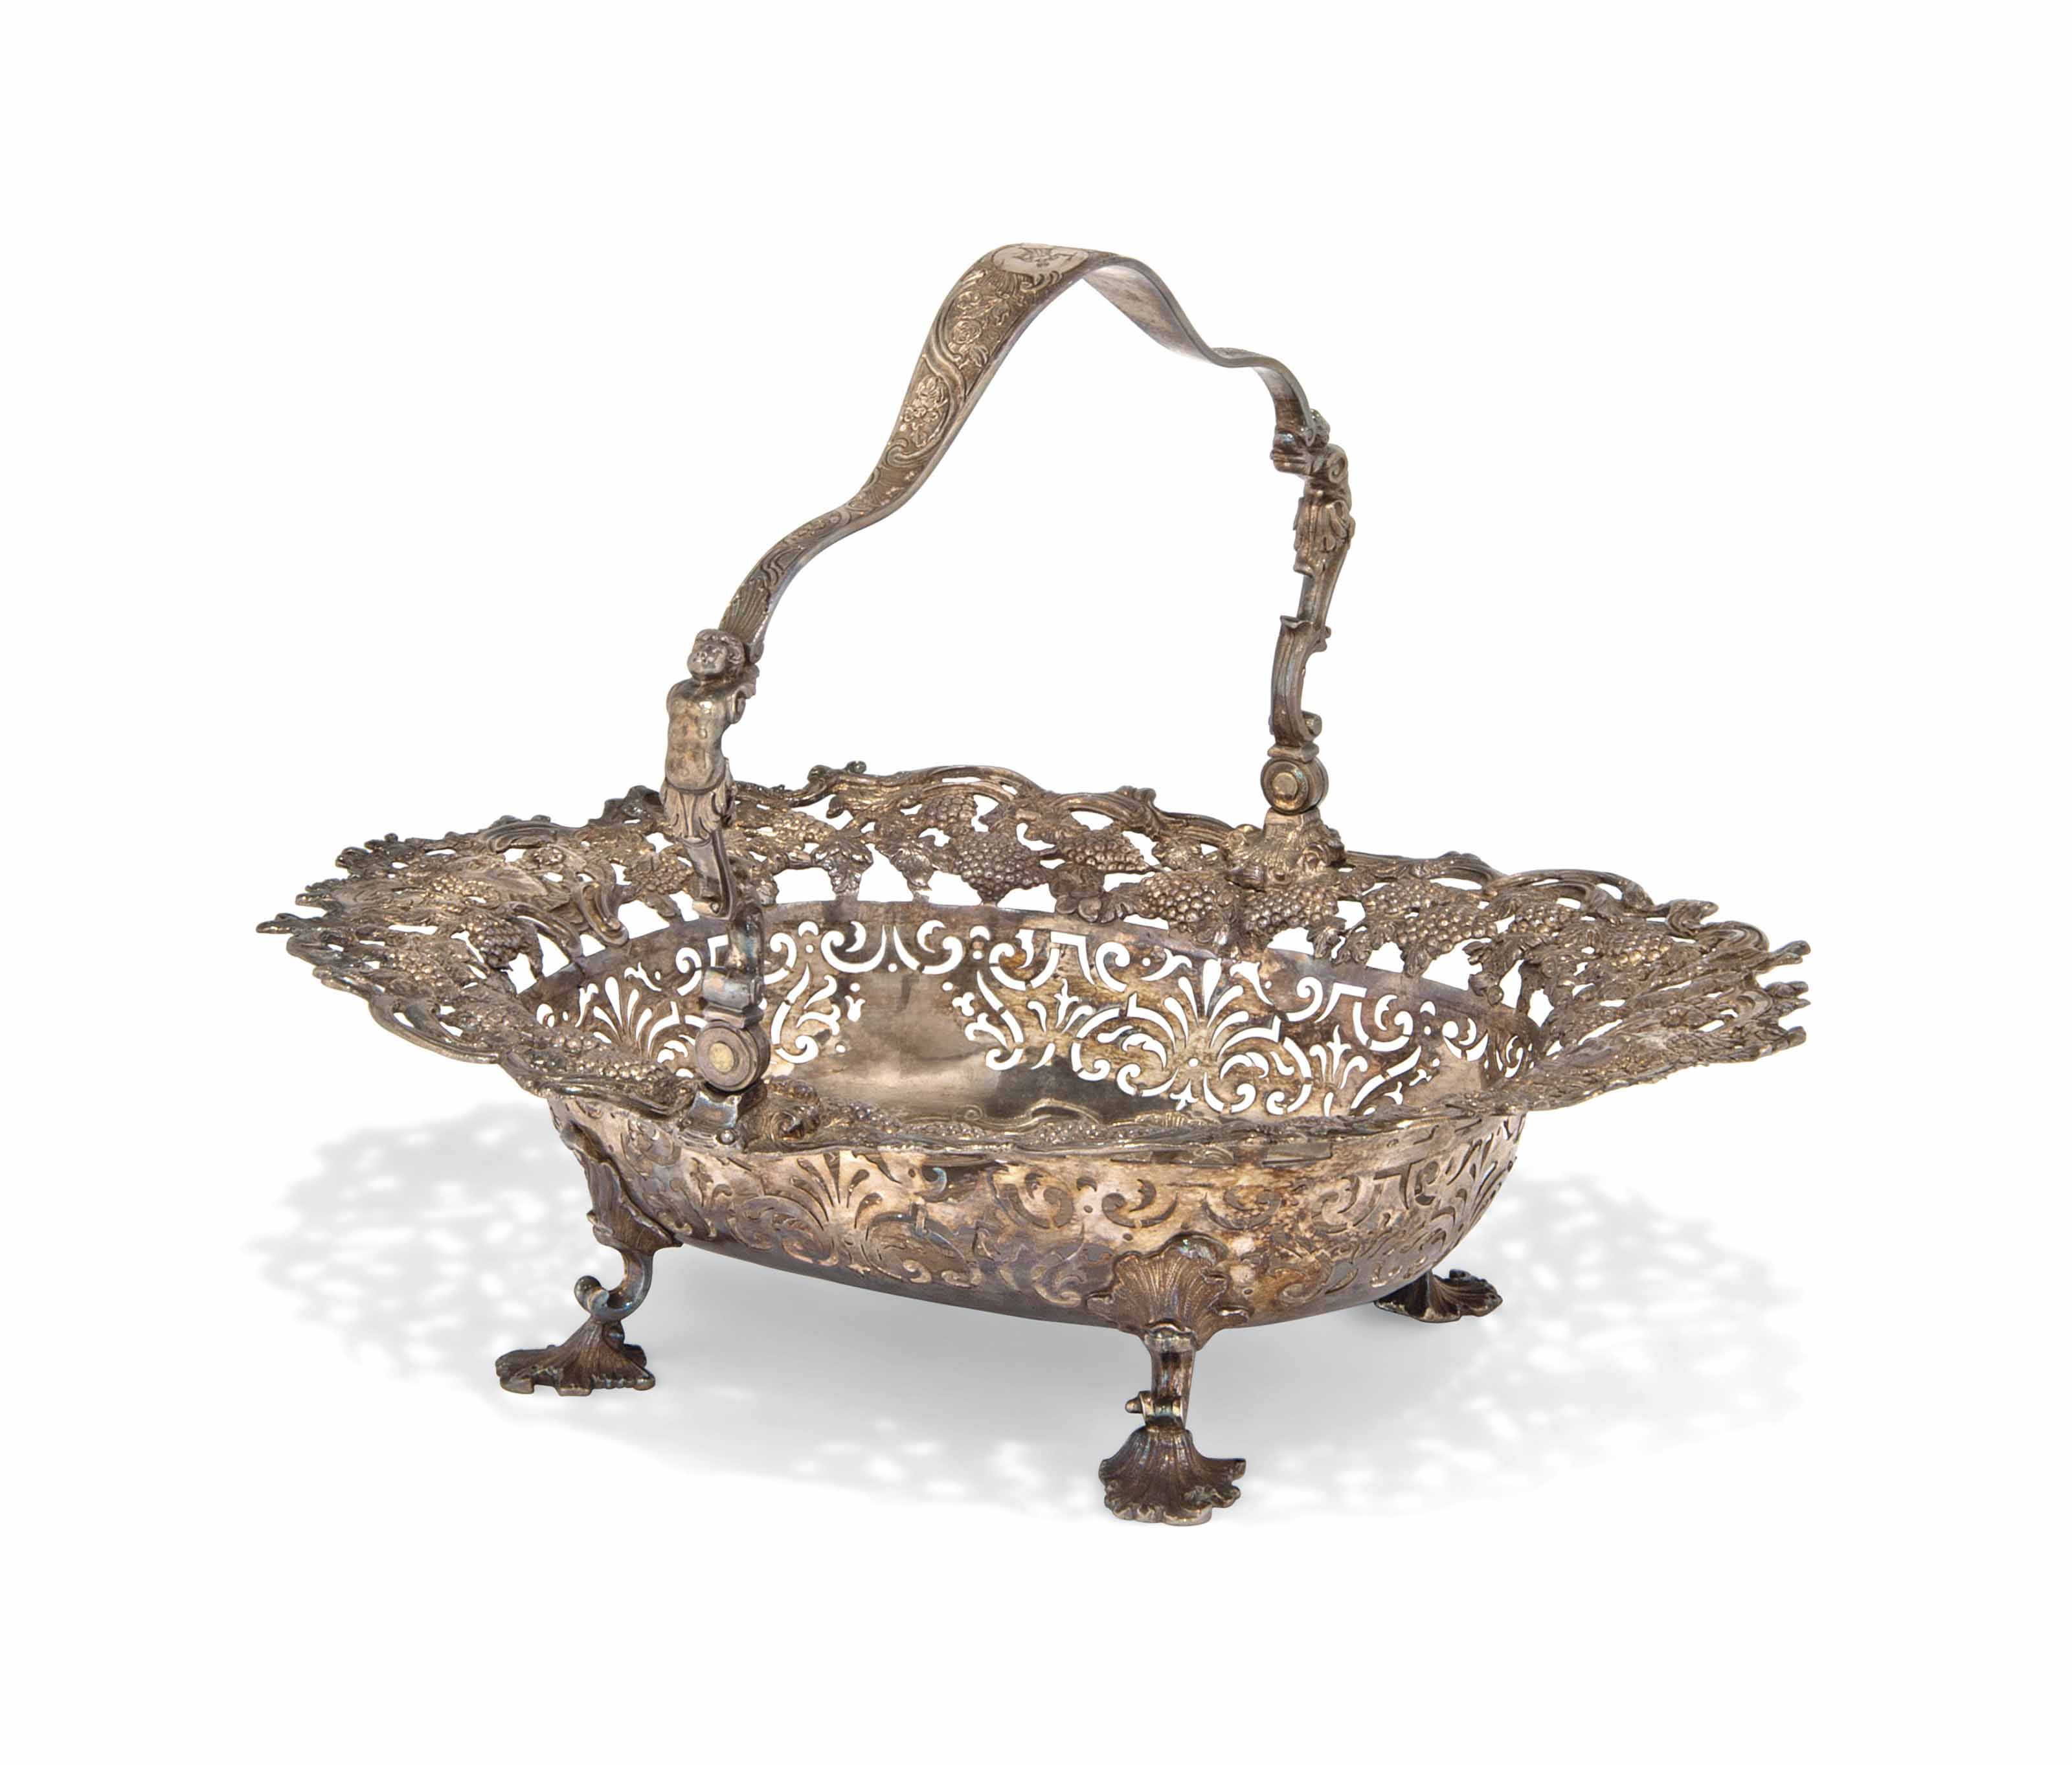 A GEORGE II SILVER CAKE BASKET WITH SWING HANDLE